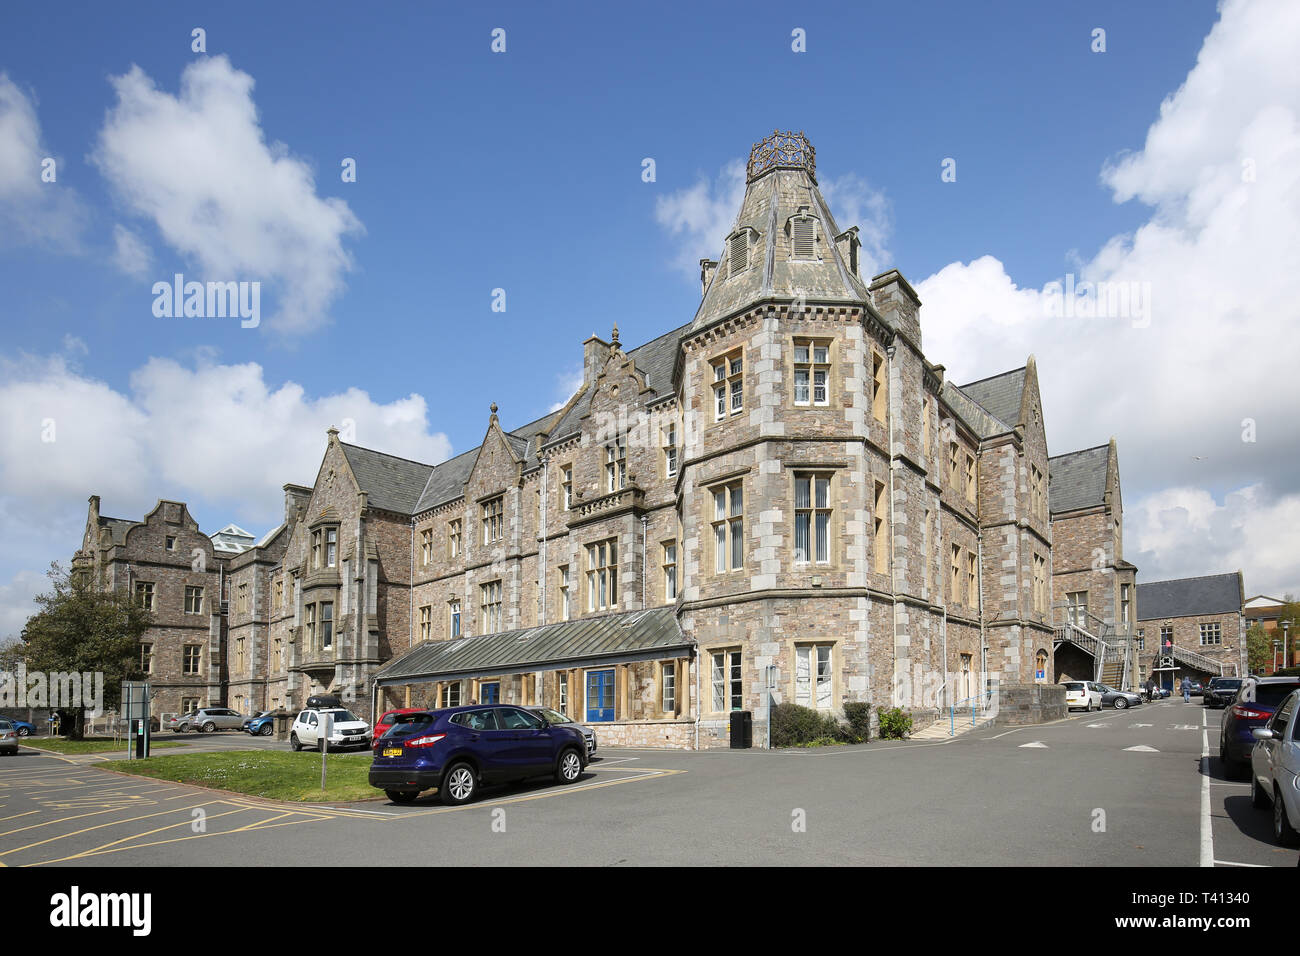 Royal Devon and Exeter Hospital. Shows Wonford House, the original Victorian hospital building now used for mental health services - Stock Image